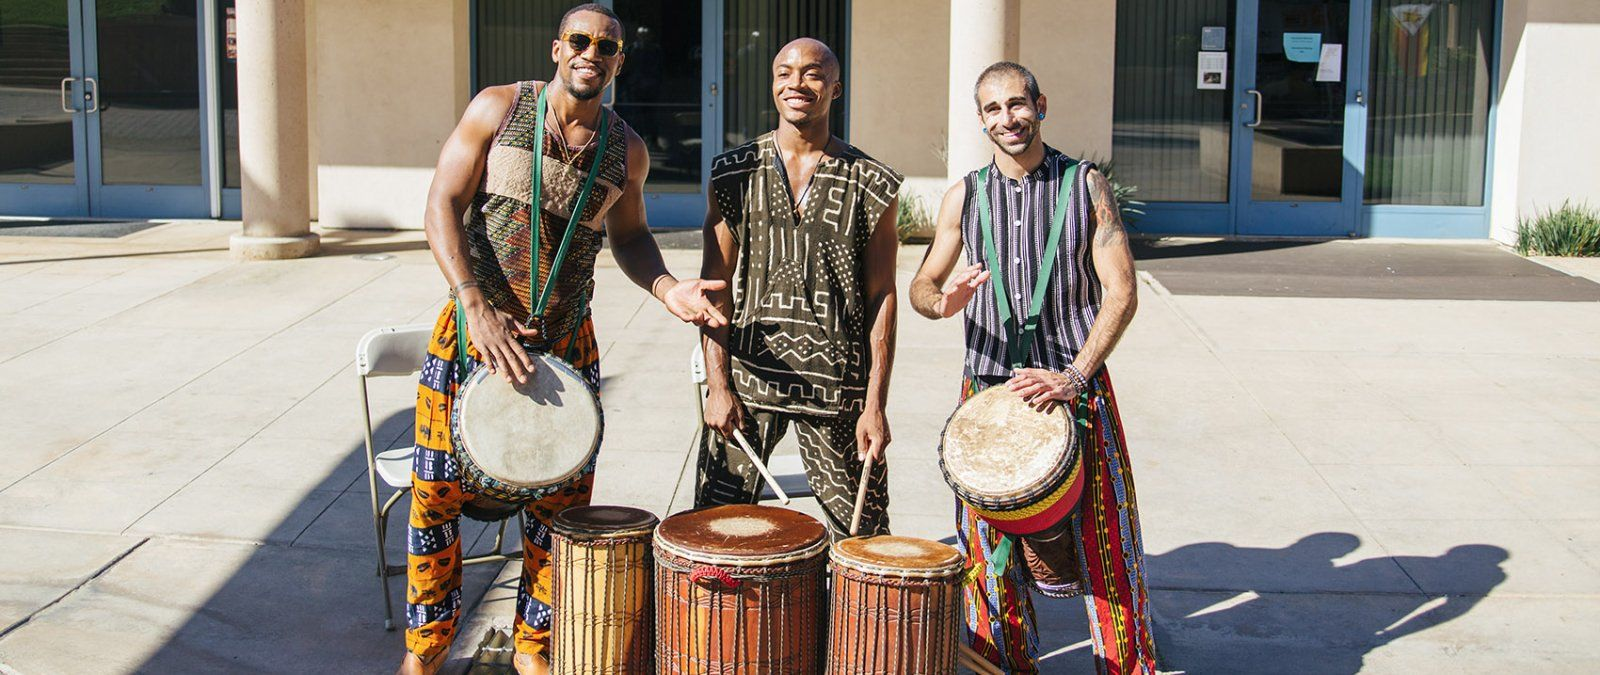 At a Tribute to Africa event, students play traditional drums and celebrate African cultures.